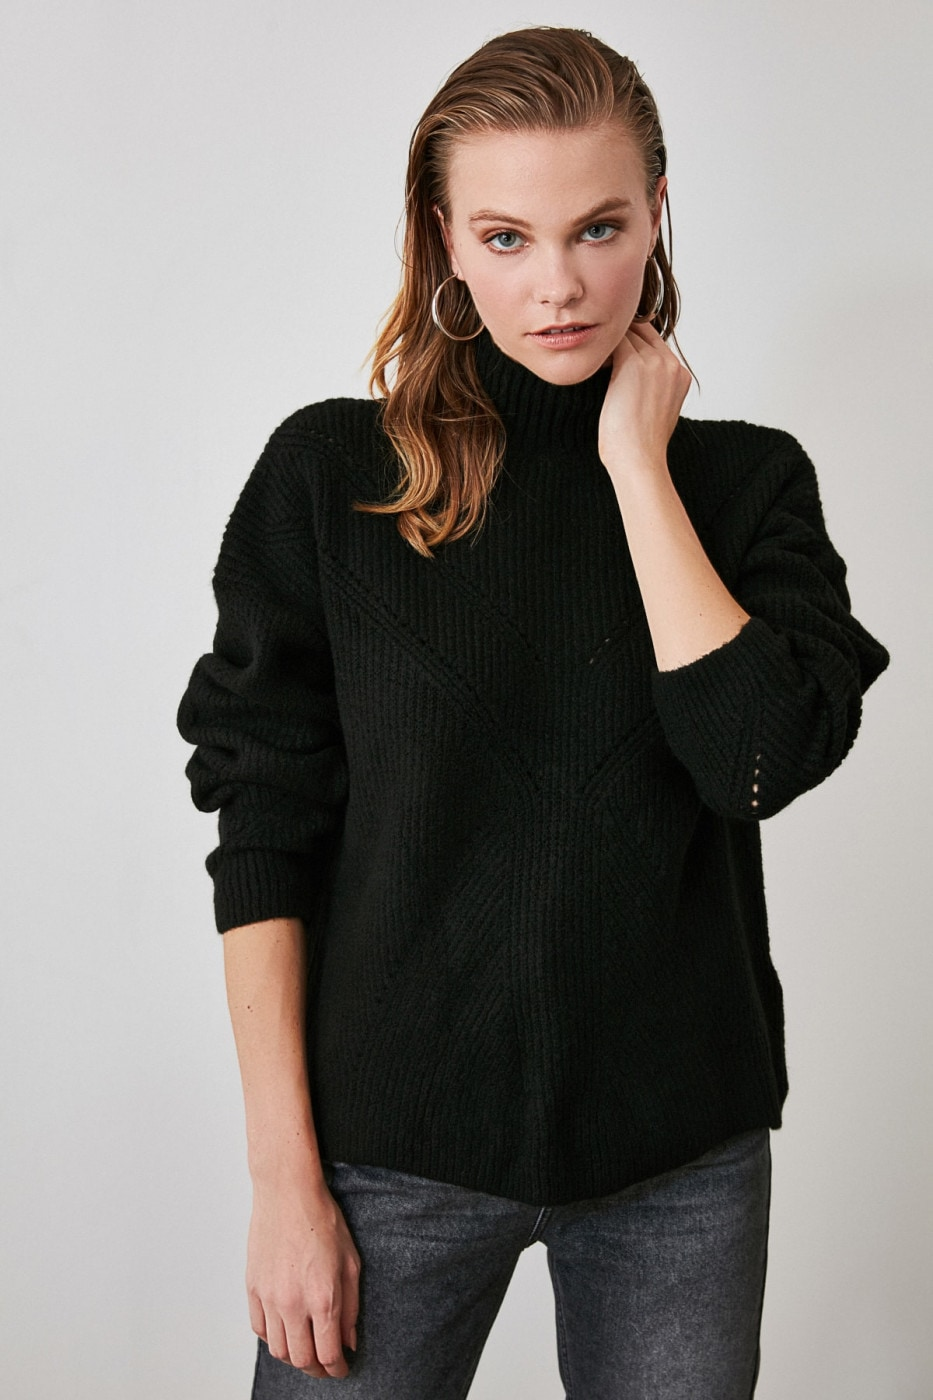 Women's sweater Trendyol Knitwear